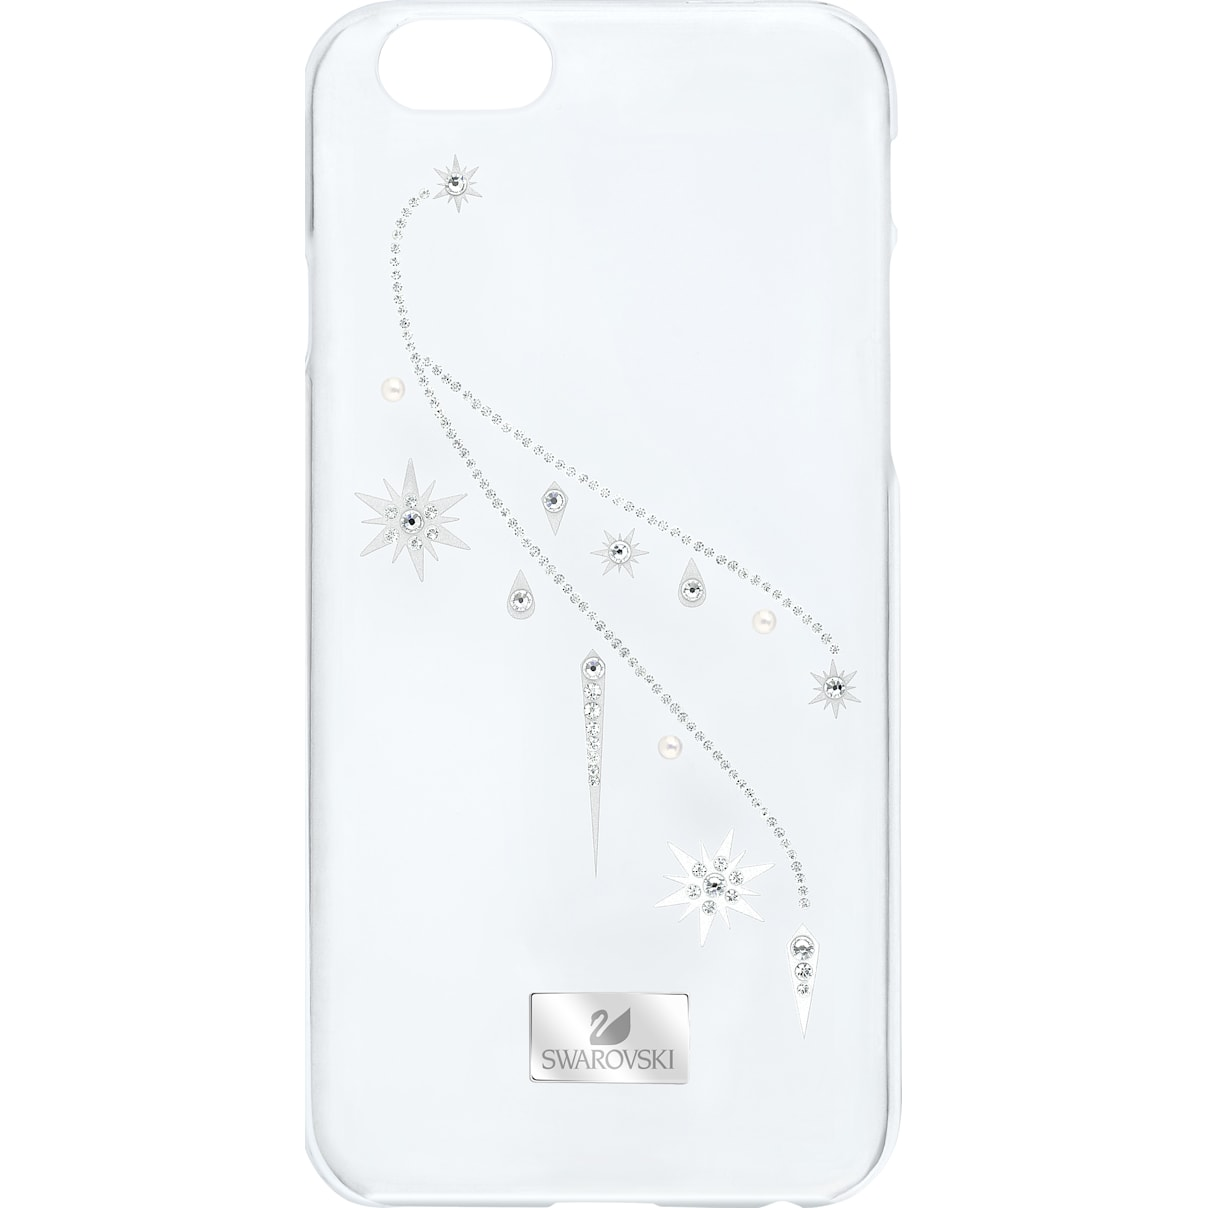 Swarovski Fantastic Smartphone Case with Bumper, iPhone® 6 Plus / 6s Plus